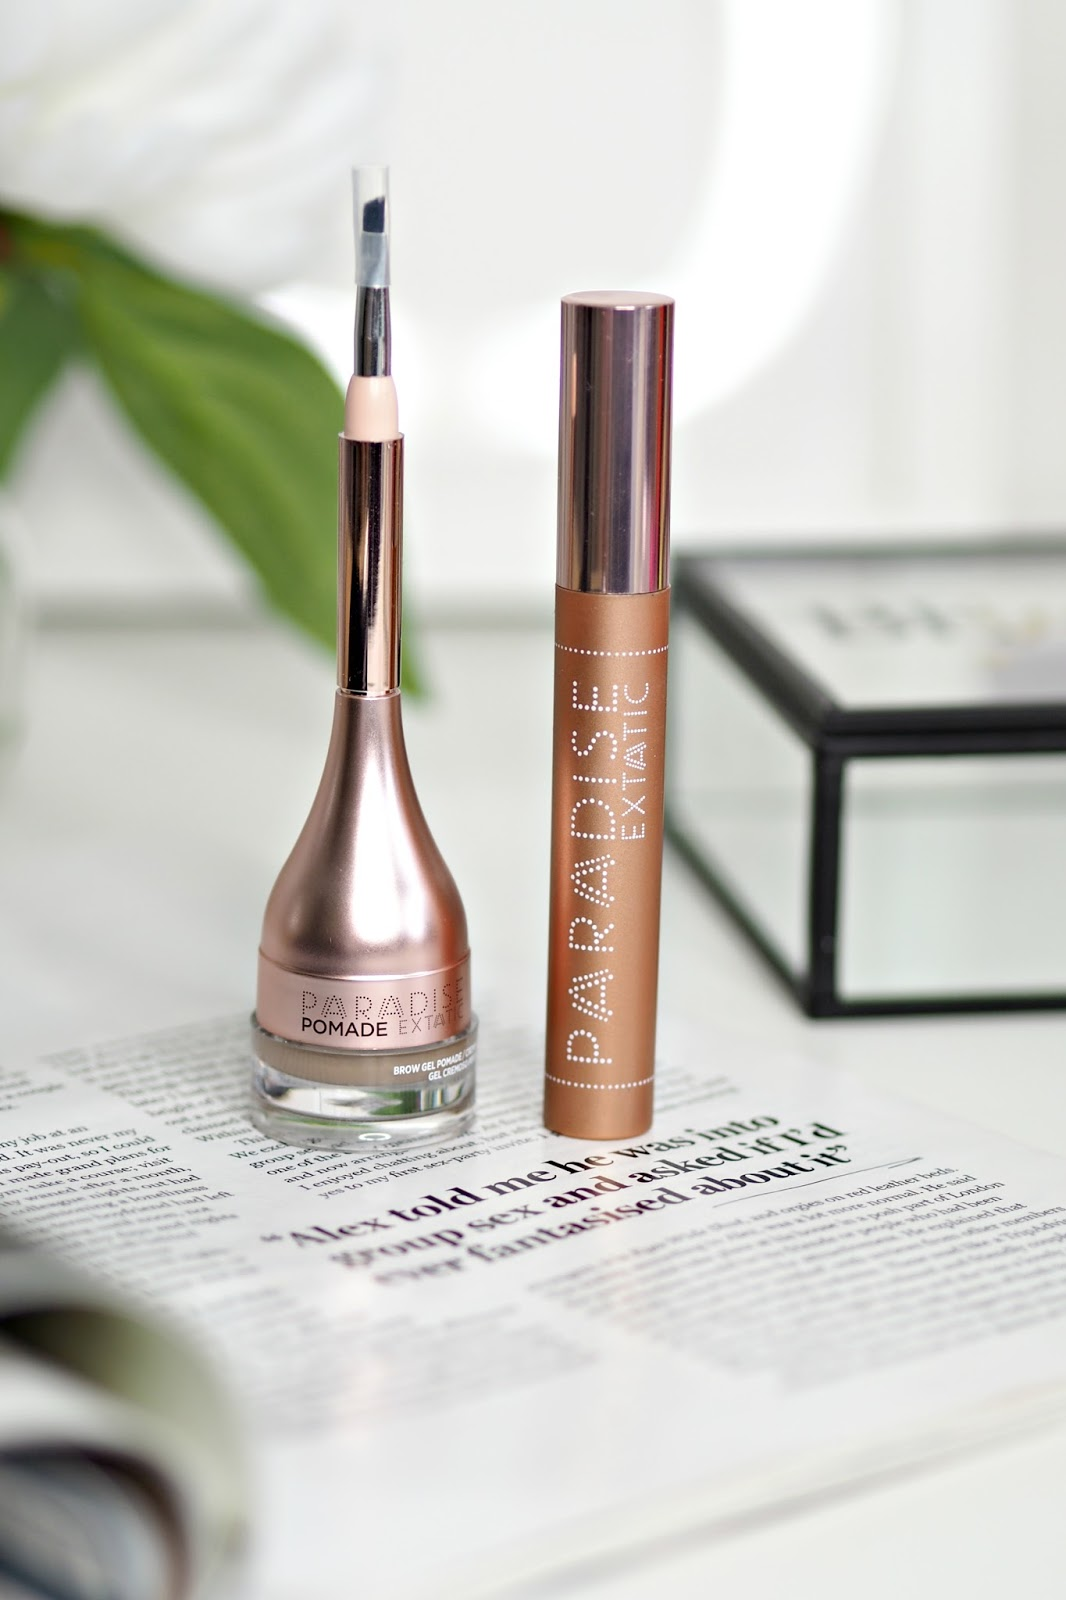 L'Oreal Paradise Extatic Mascara and Brow Pomade